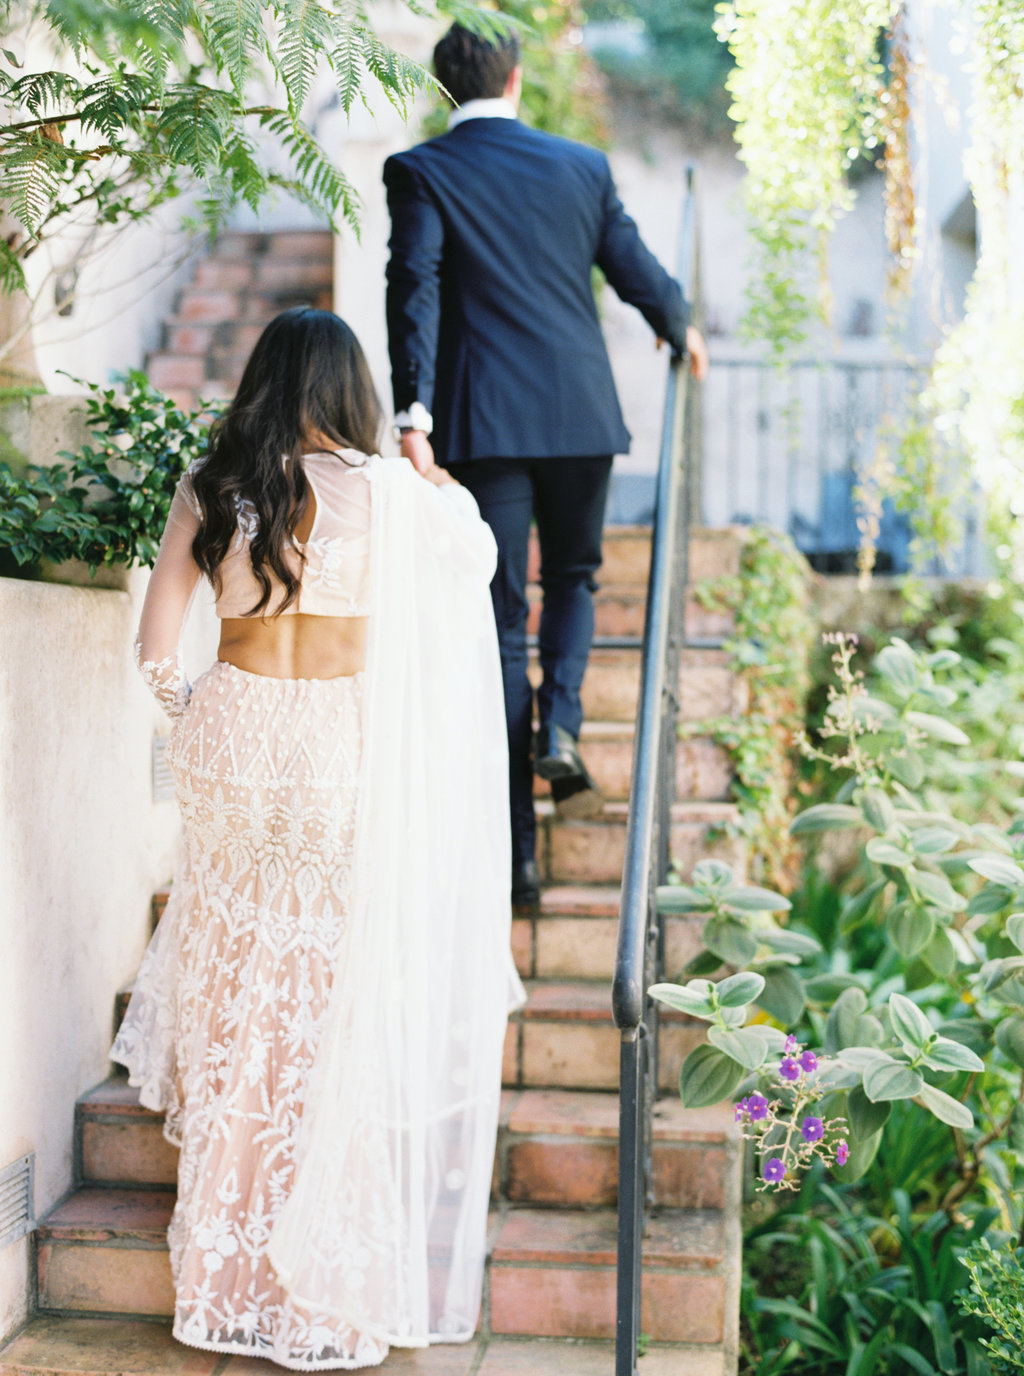 Bride and groom first look photo at Butterfly Lane Estate in Montecito